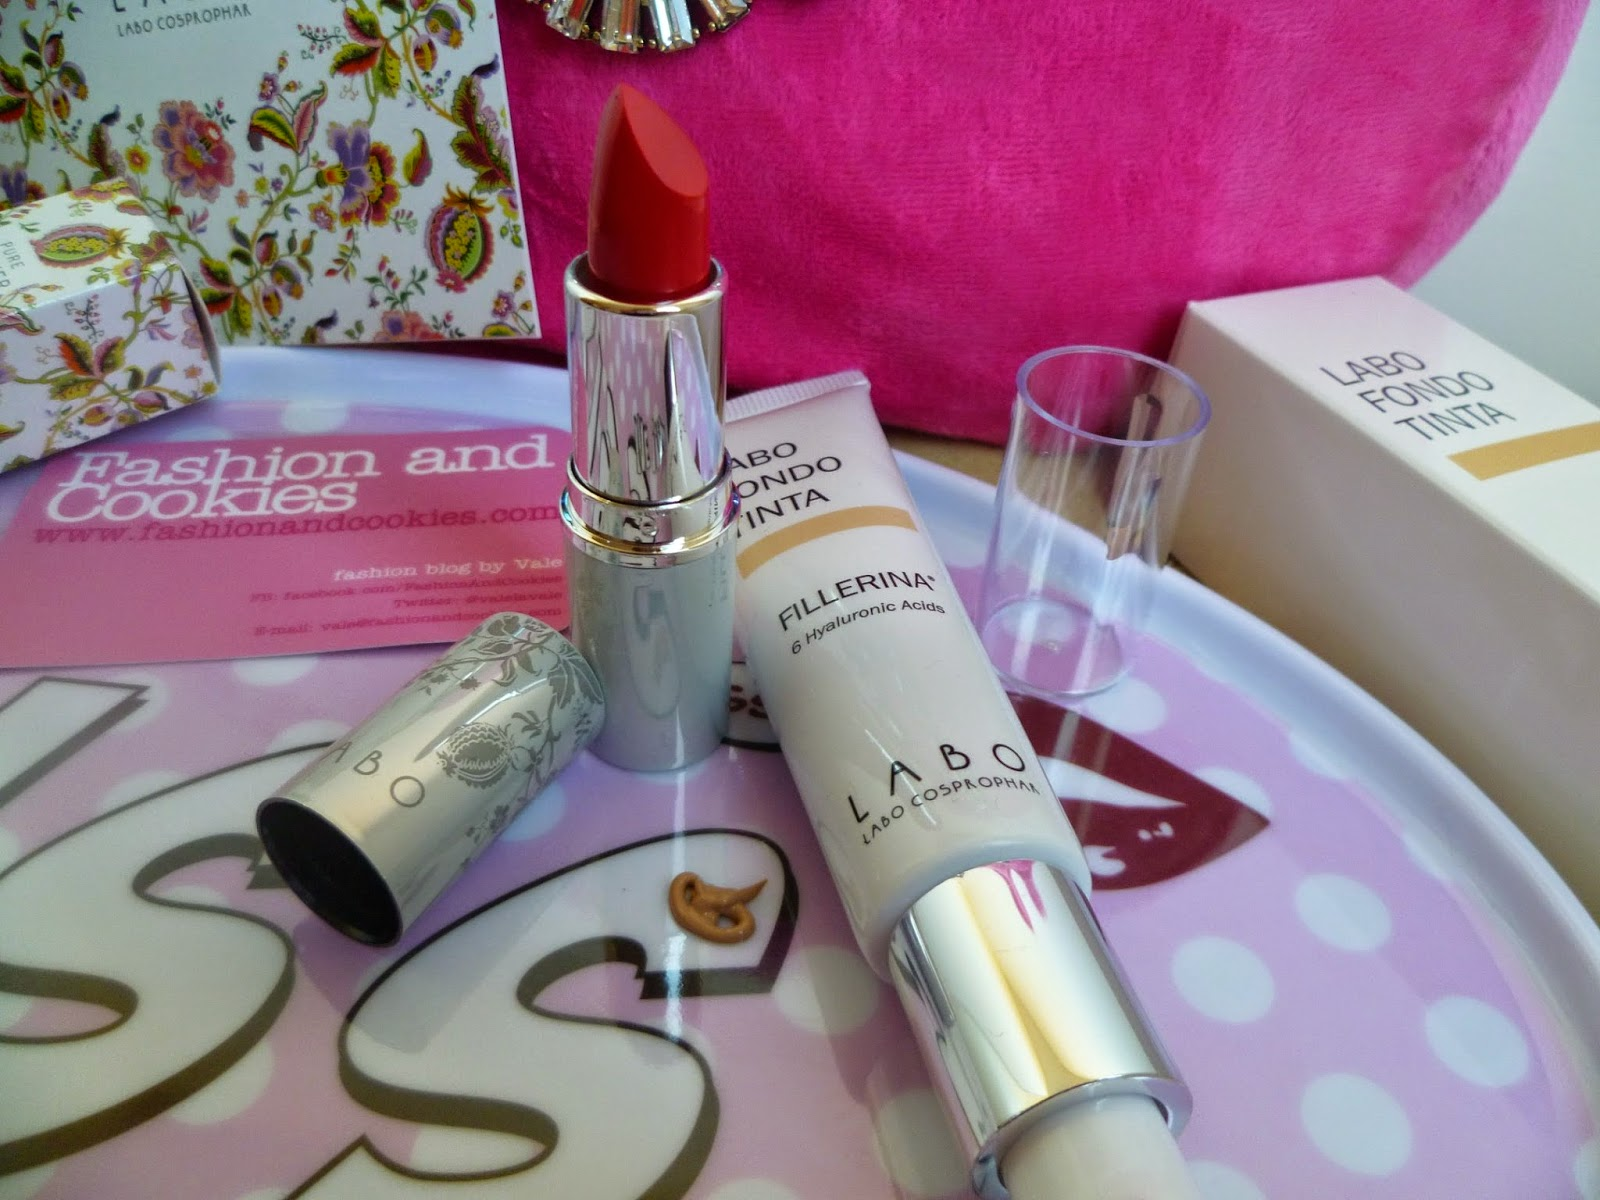 Labo make-up, Labo fillerina, Labo red lipstick, Labo fillerina fondotinta, Fashion and Cookies, fashion blogger, fillerina review